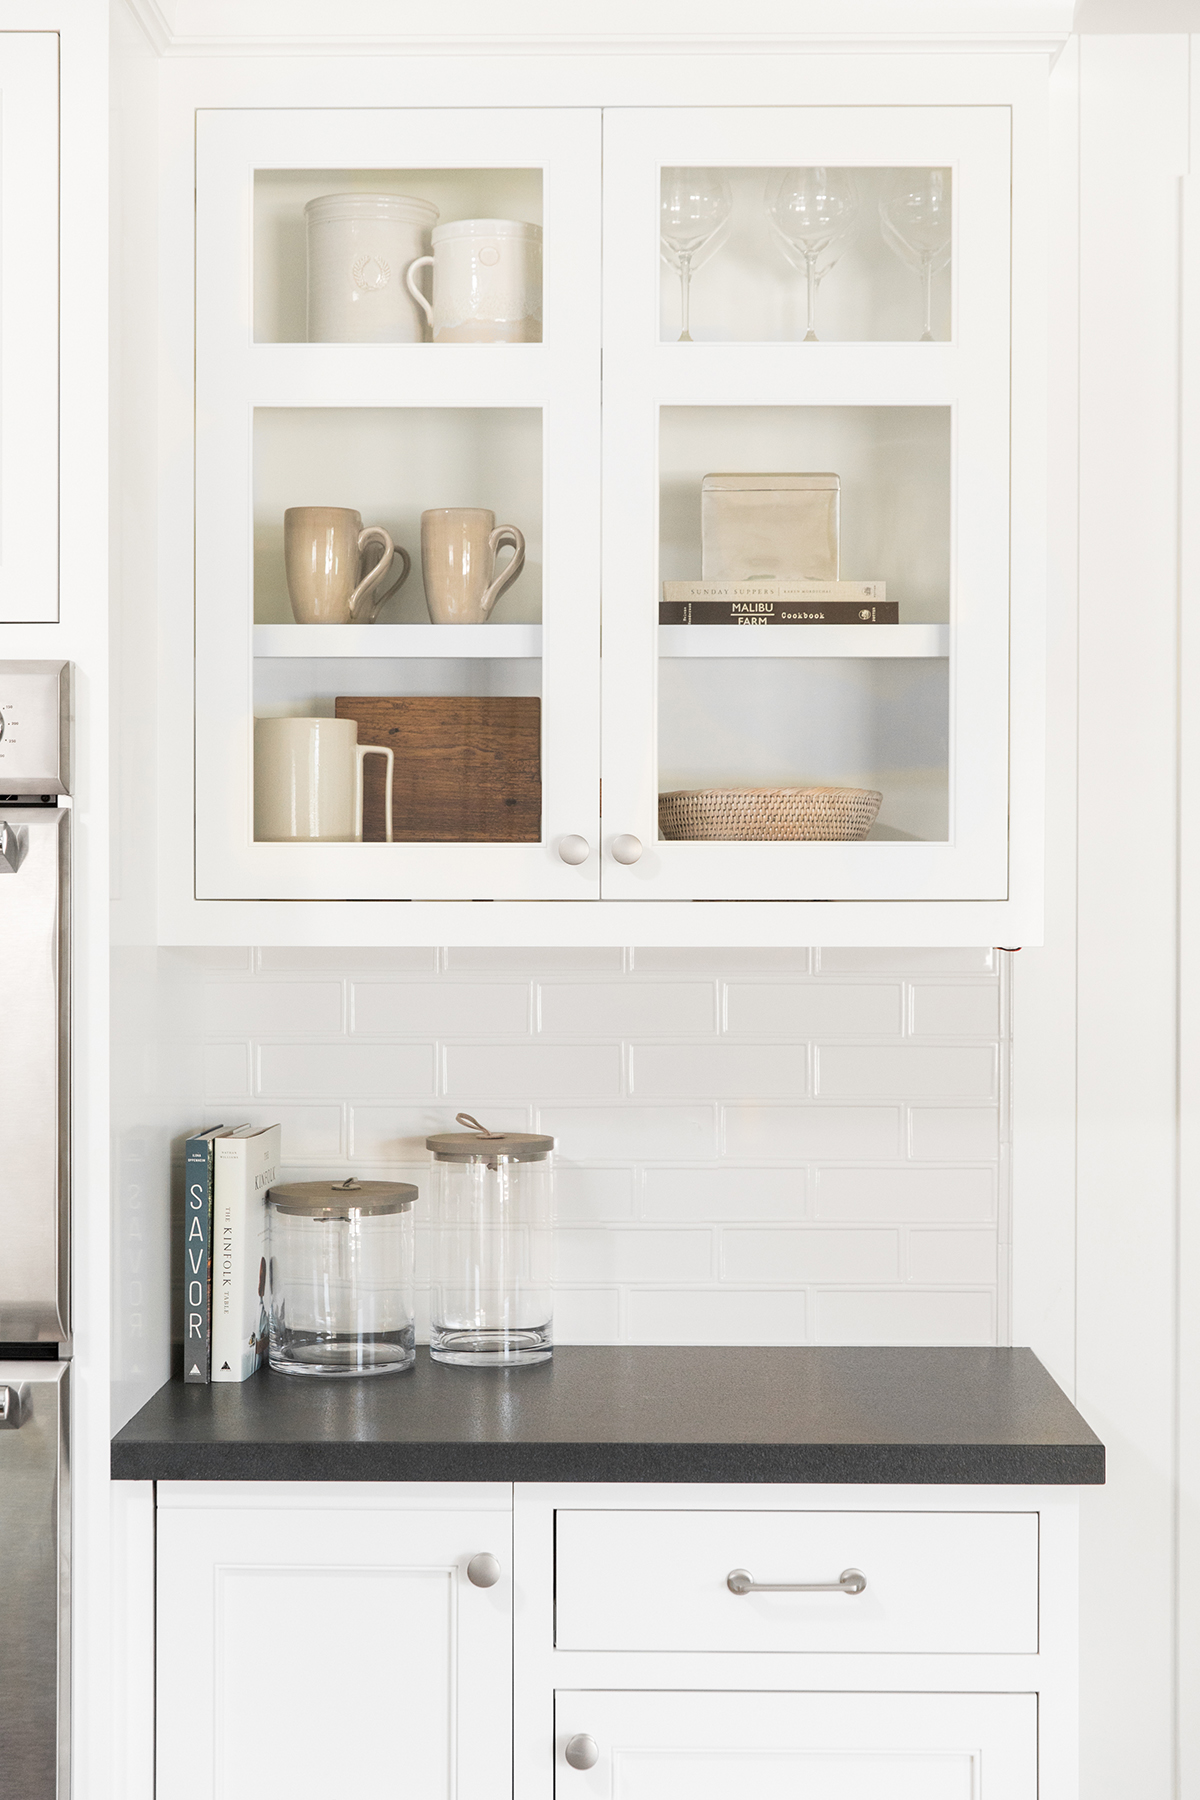 Kitchen cabinetry with clear glass, dark countertops-Studio McGee.jpg